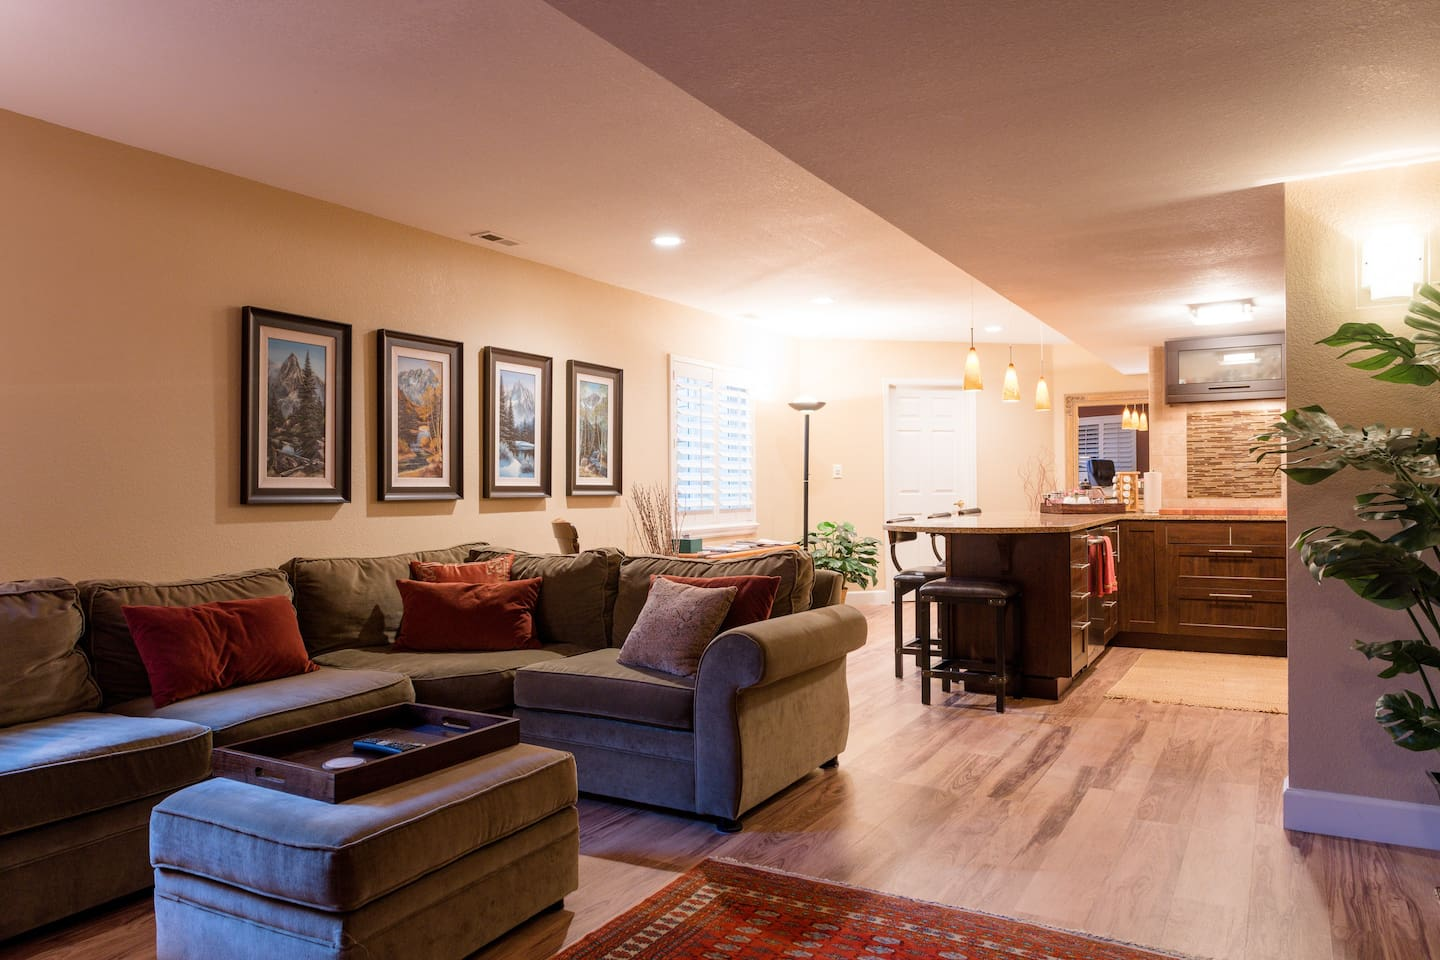 Over 1,000 square feet of spacious and comfortable living.